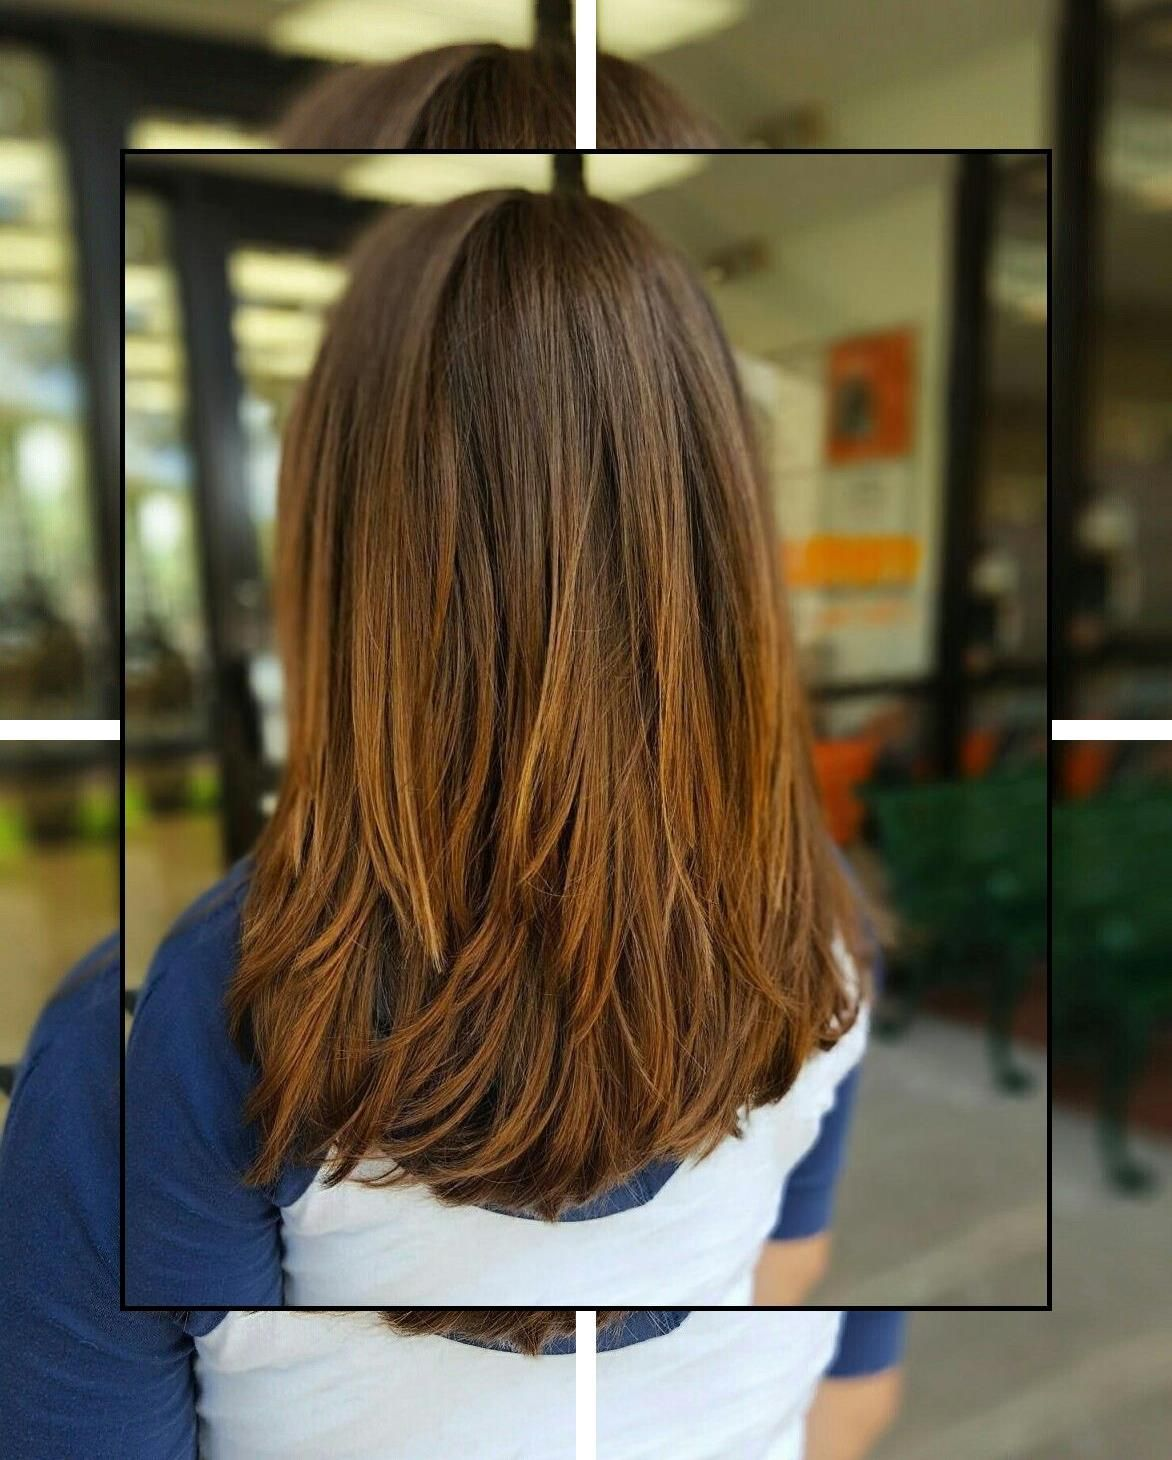 Get Straight Hair Naturally Photo Hairstyle Easy Hairstyles For Straightened Hair In 2020 Straight Hairstyles Short Hair Pictures Hair Styles